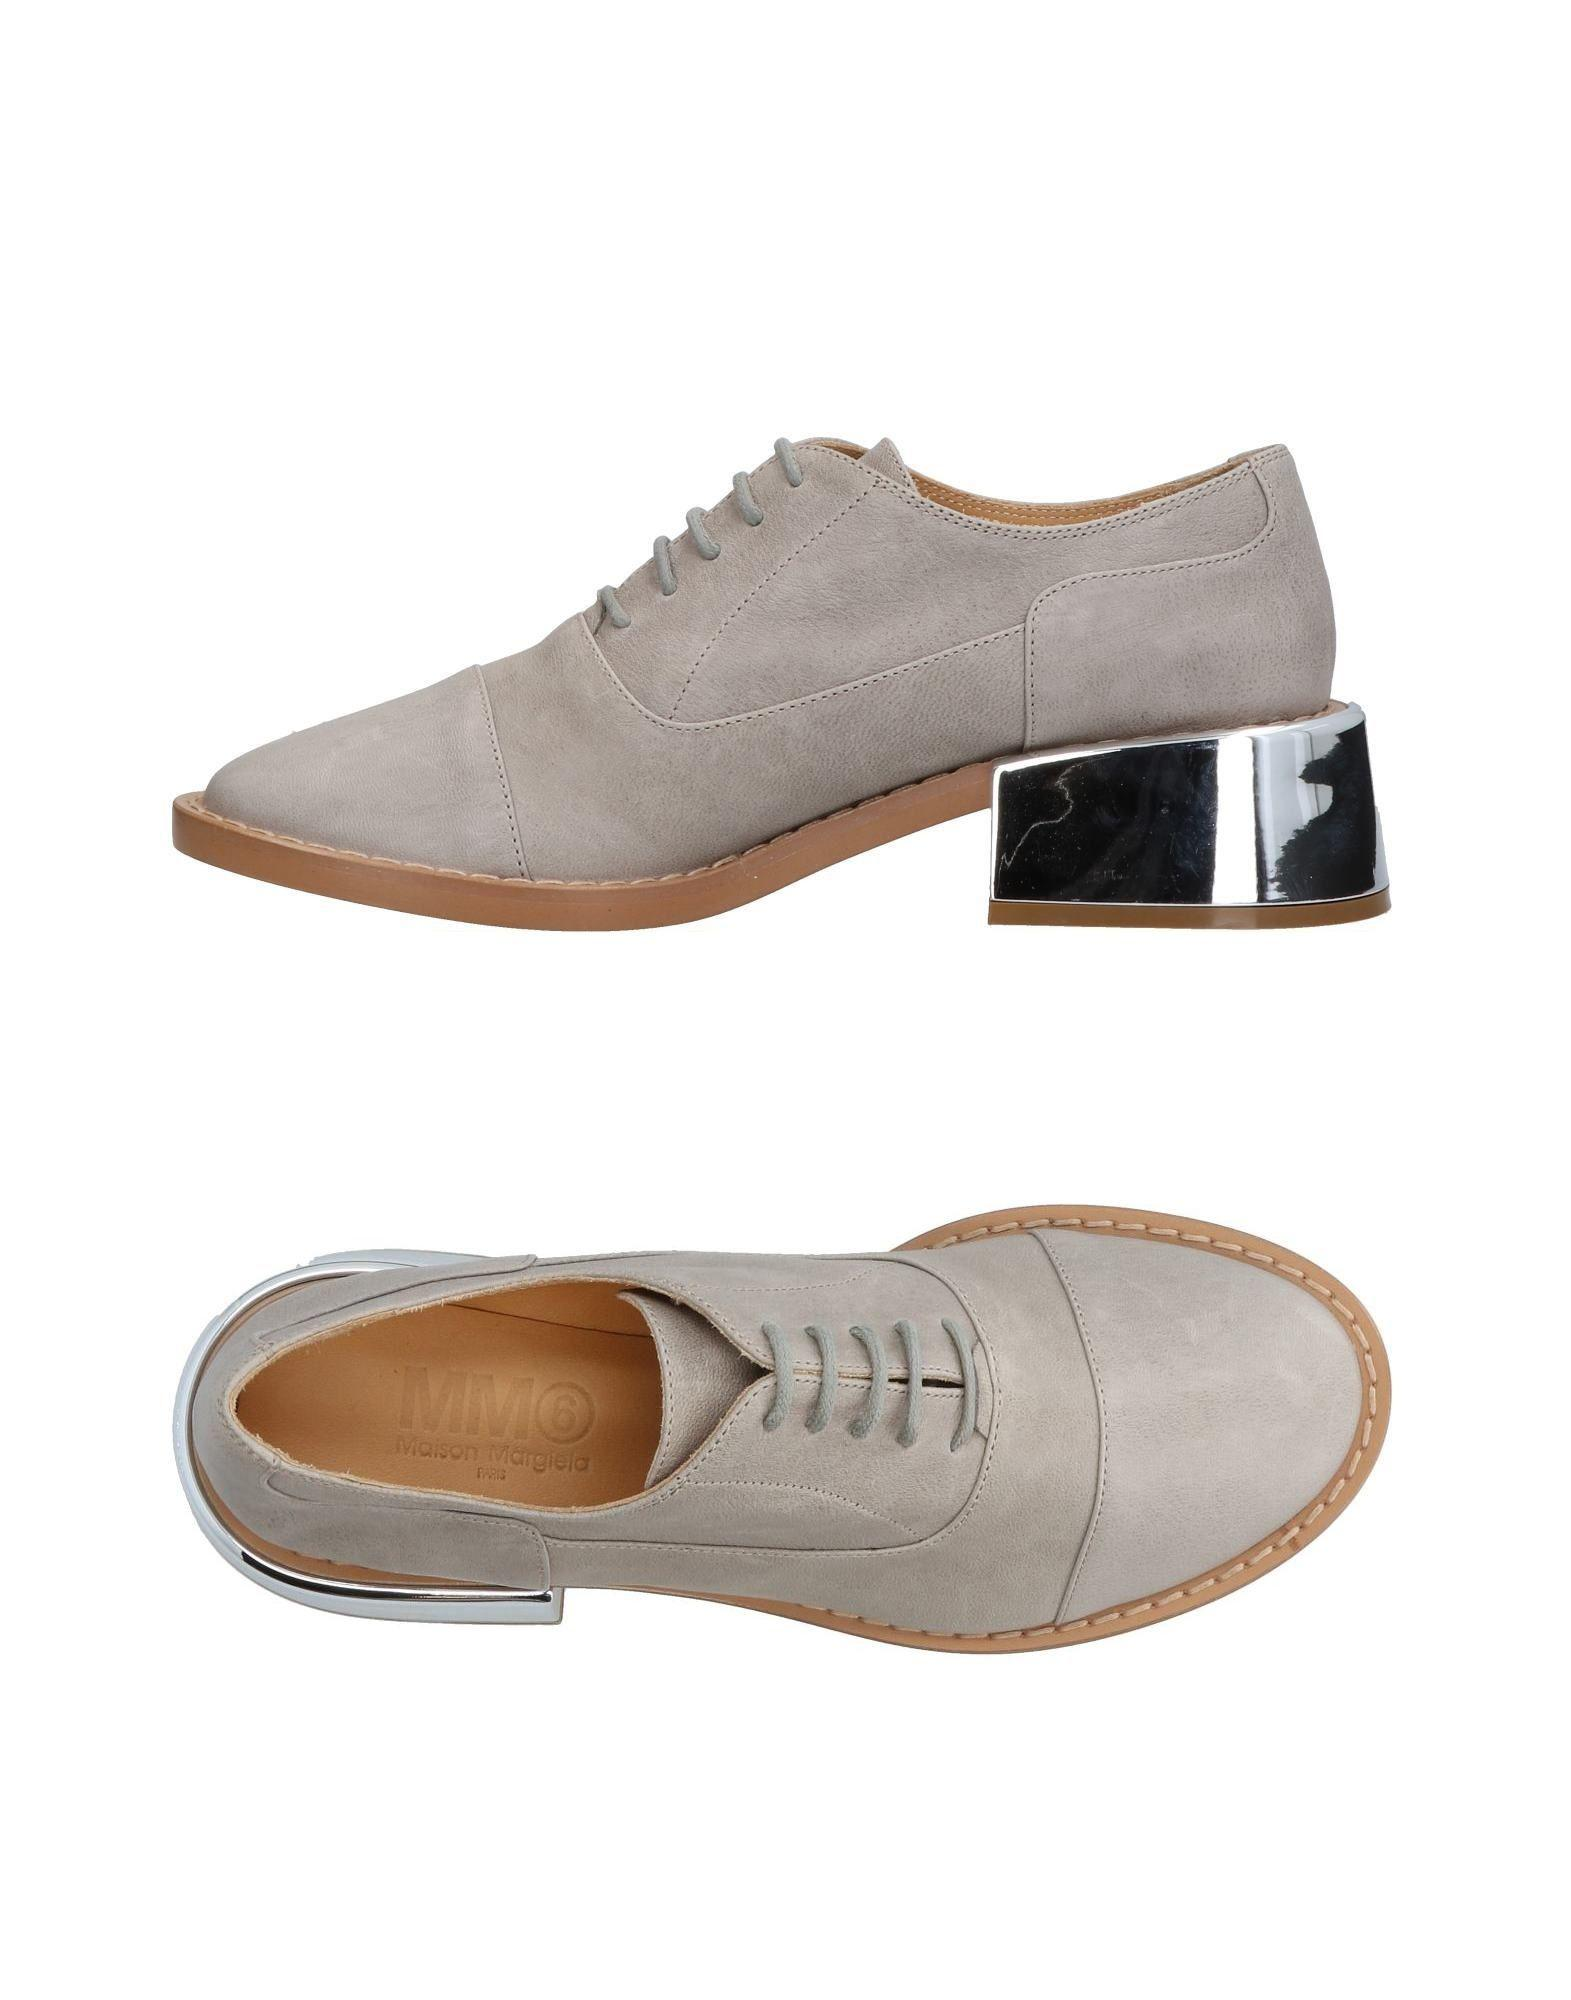 Cheap With Paypal FOOTWEAR - Lace-up shoes Maison Martin Margiela Clearance Outlet Store 5HUHe1nOl